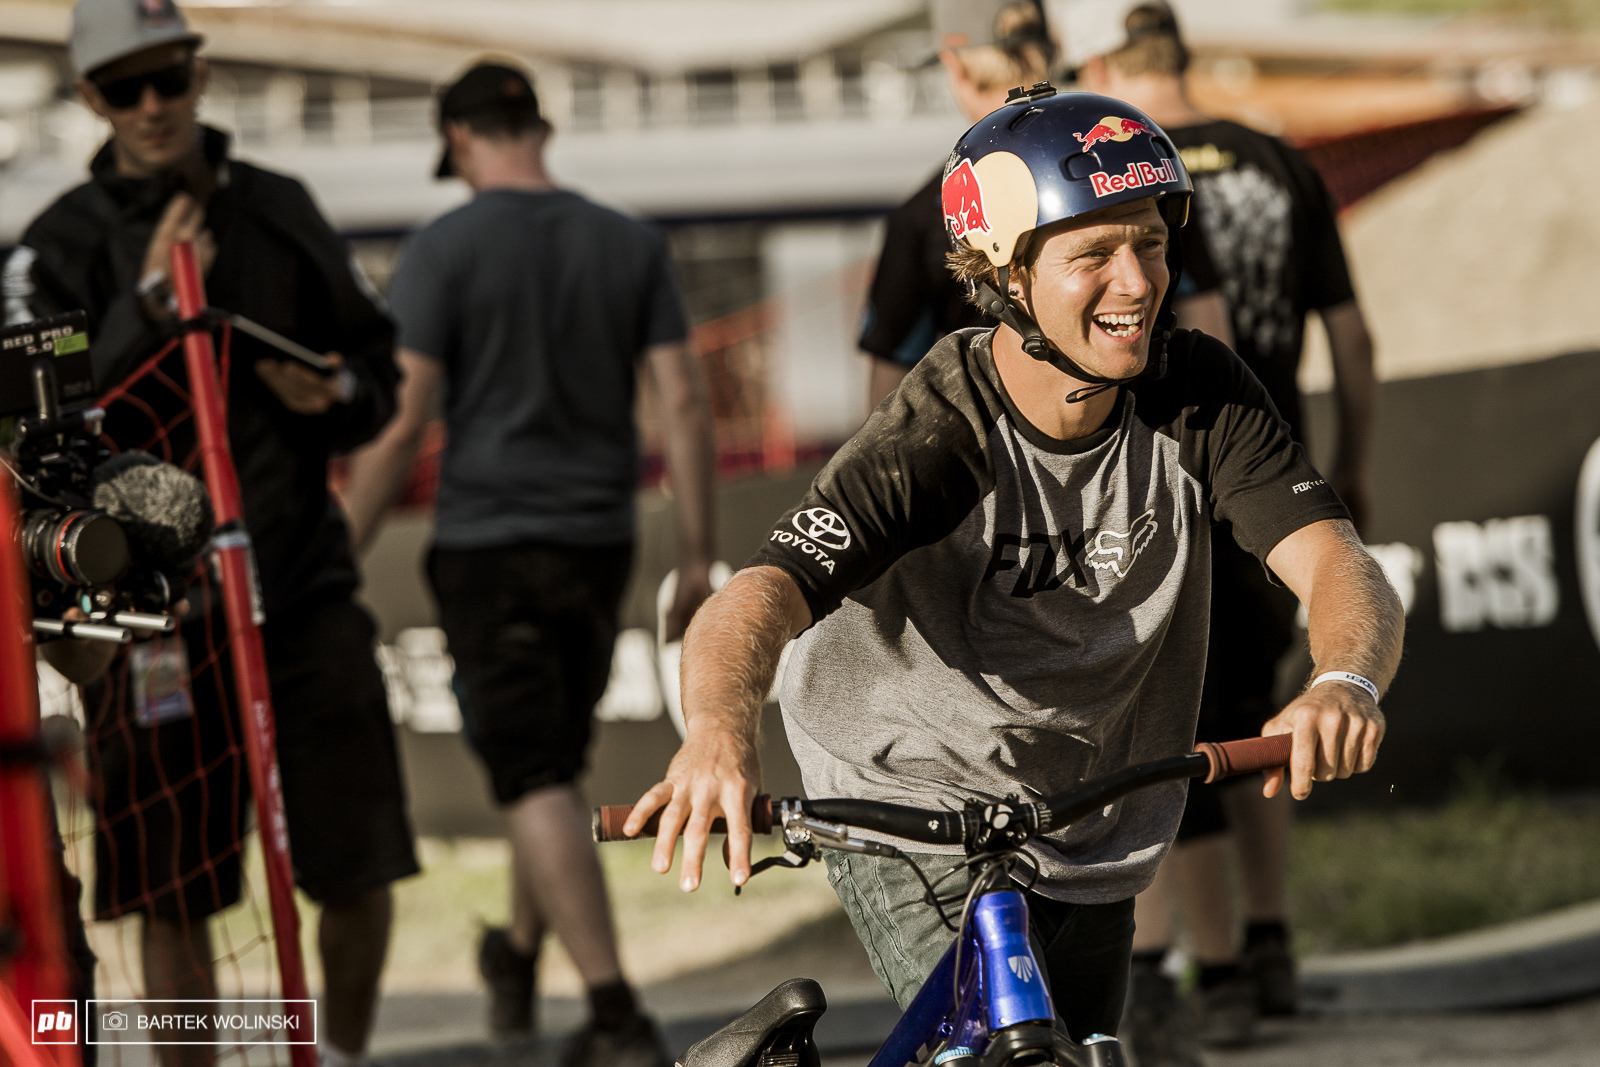 Drew visited Leogang straight after X Games in Austin but his MTB debut is still getting on slowly. Despite being bit sore after Swatch Rocket Air he managed to pull massive flatspins but it wasn t enough to even scratch the final list.